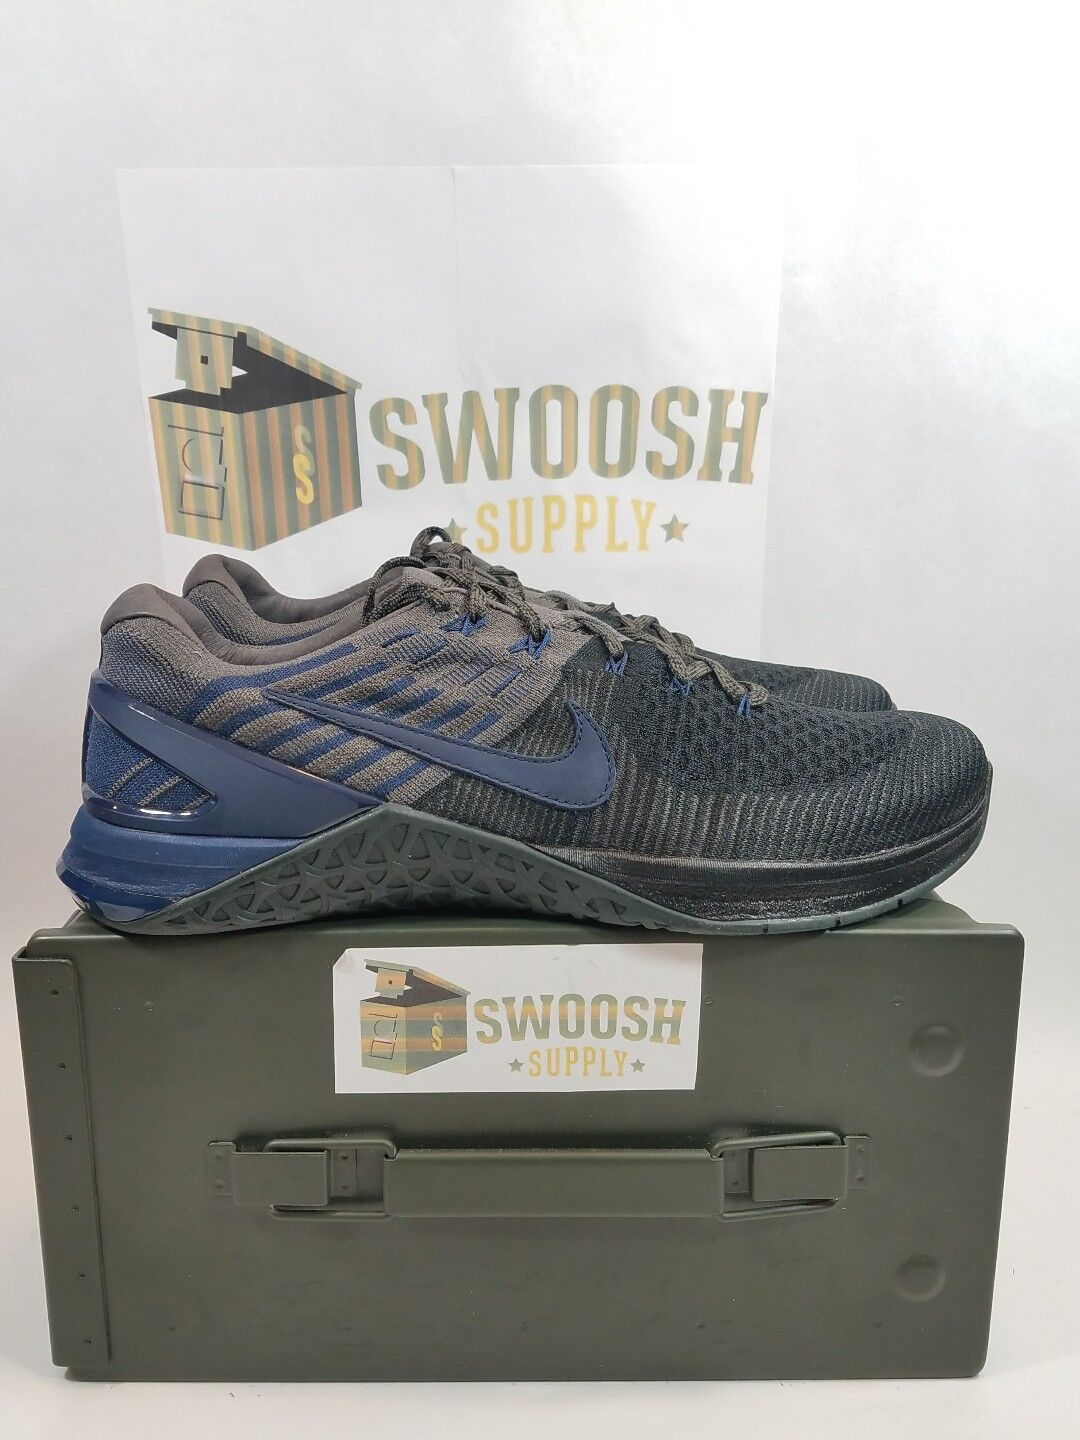 NIKE METCON DSX FLYKNIT LE CROSSFIT TRAINING SHOES BLACK NAVY 916280-004 Size